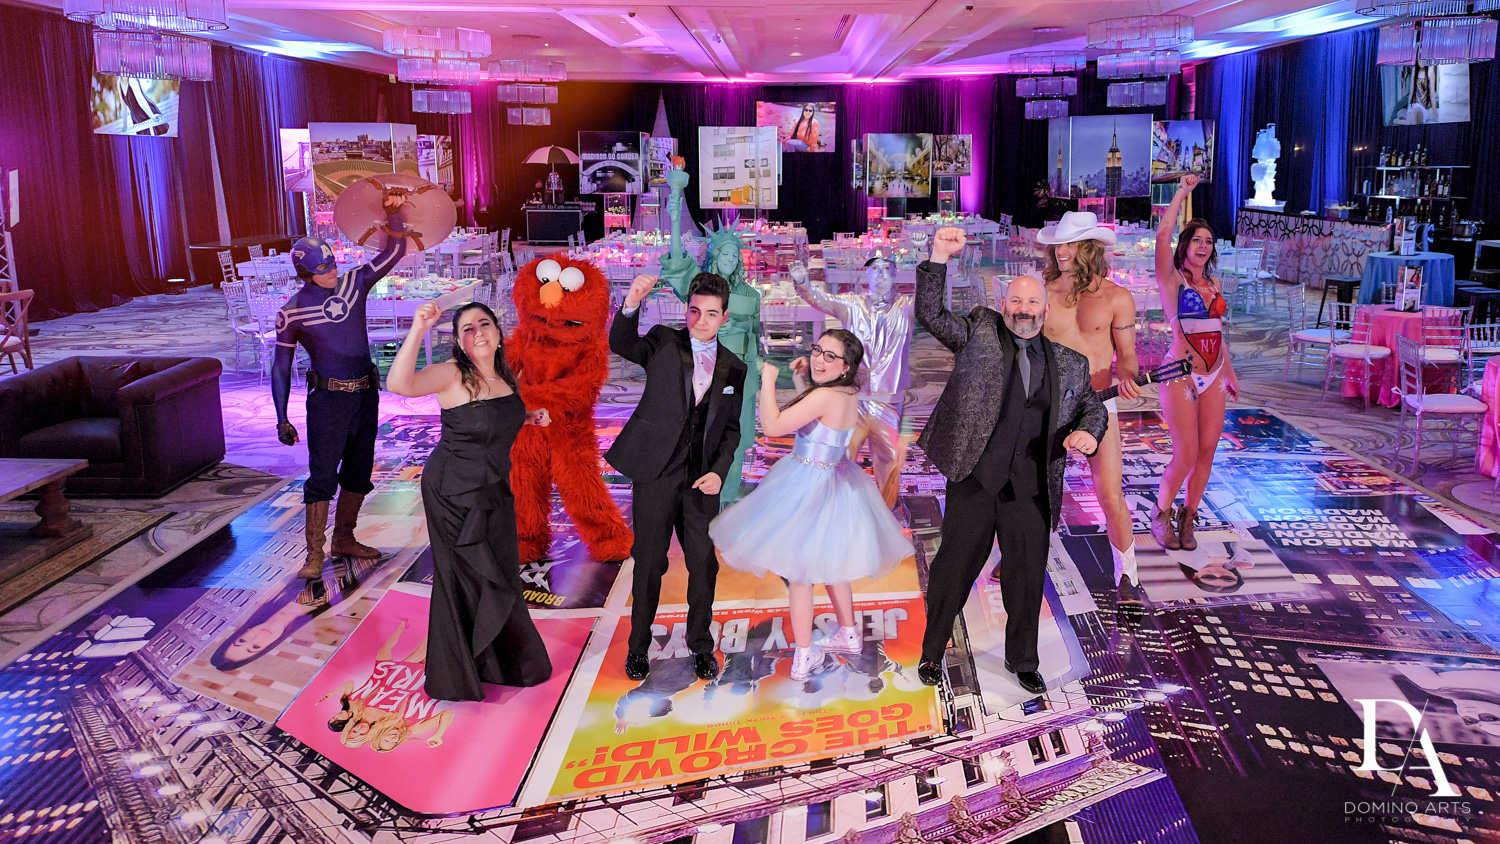 celebrity impersonators at New York Theme Bat Mitzvah at Woodfield Country Club, Boca Raton by Domino Arts Photography